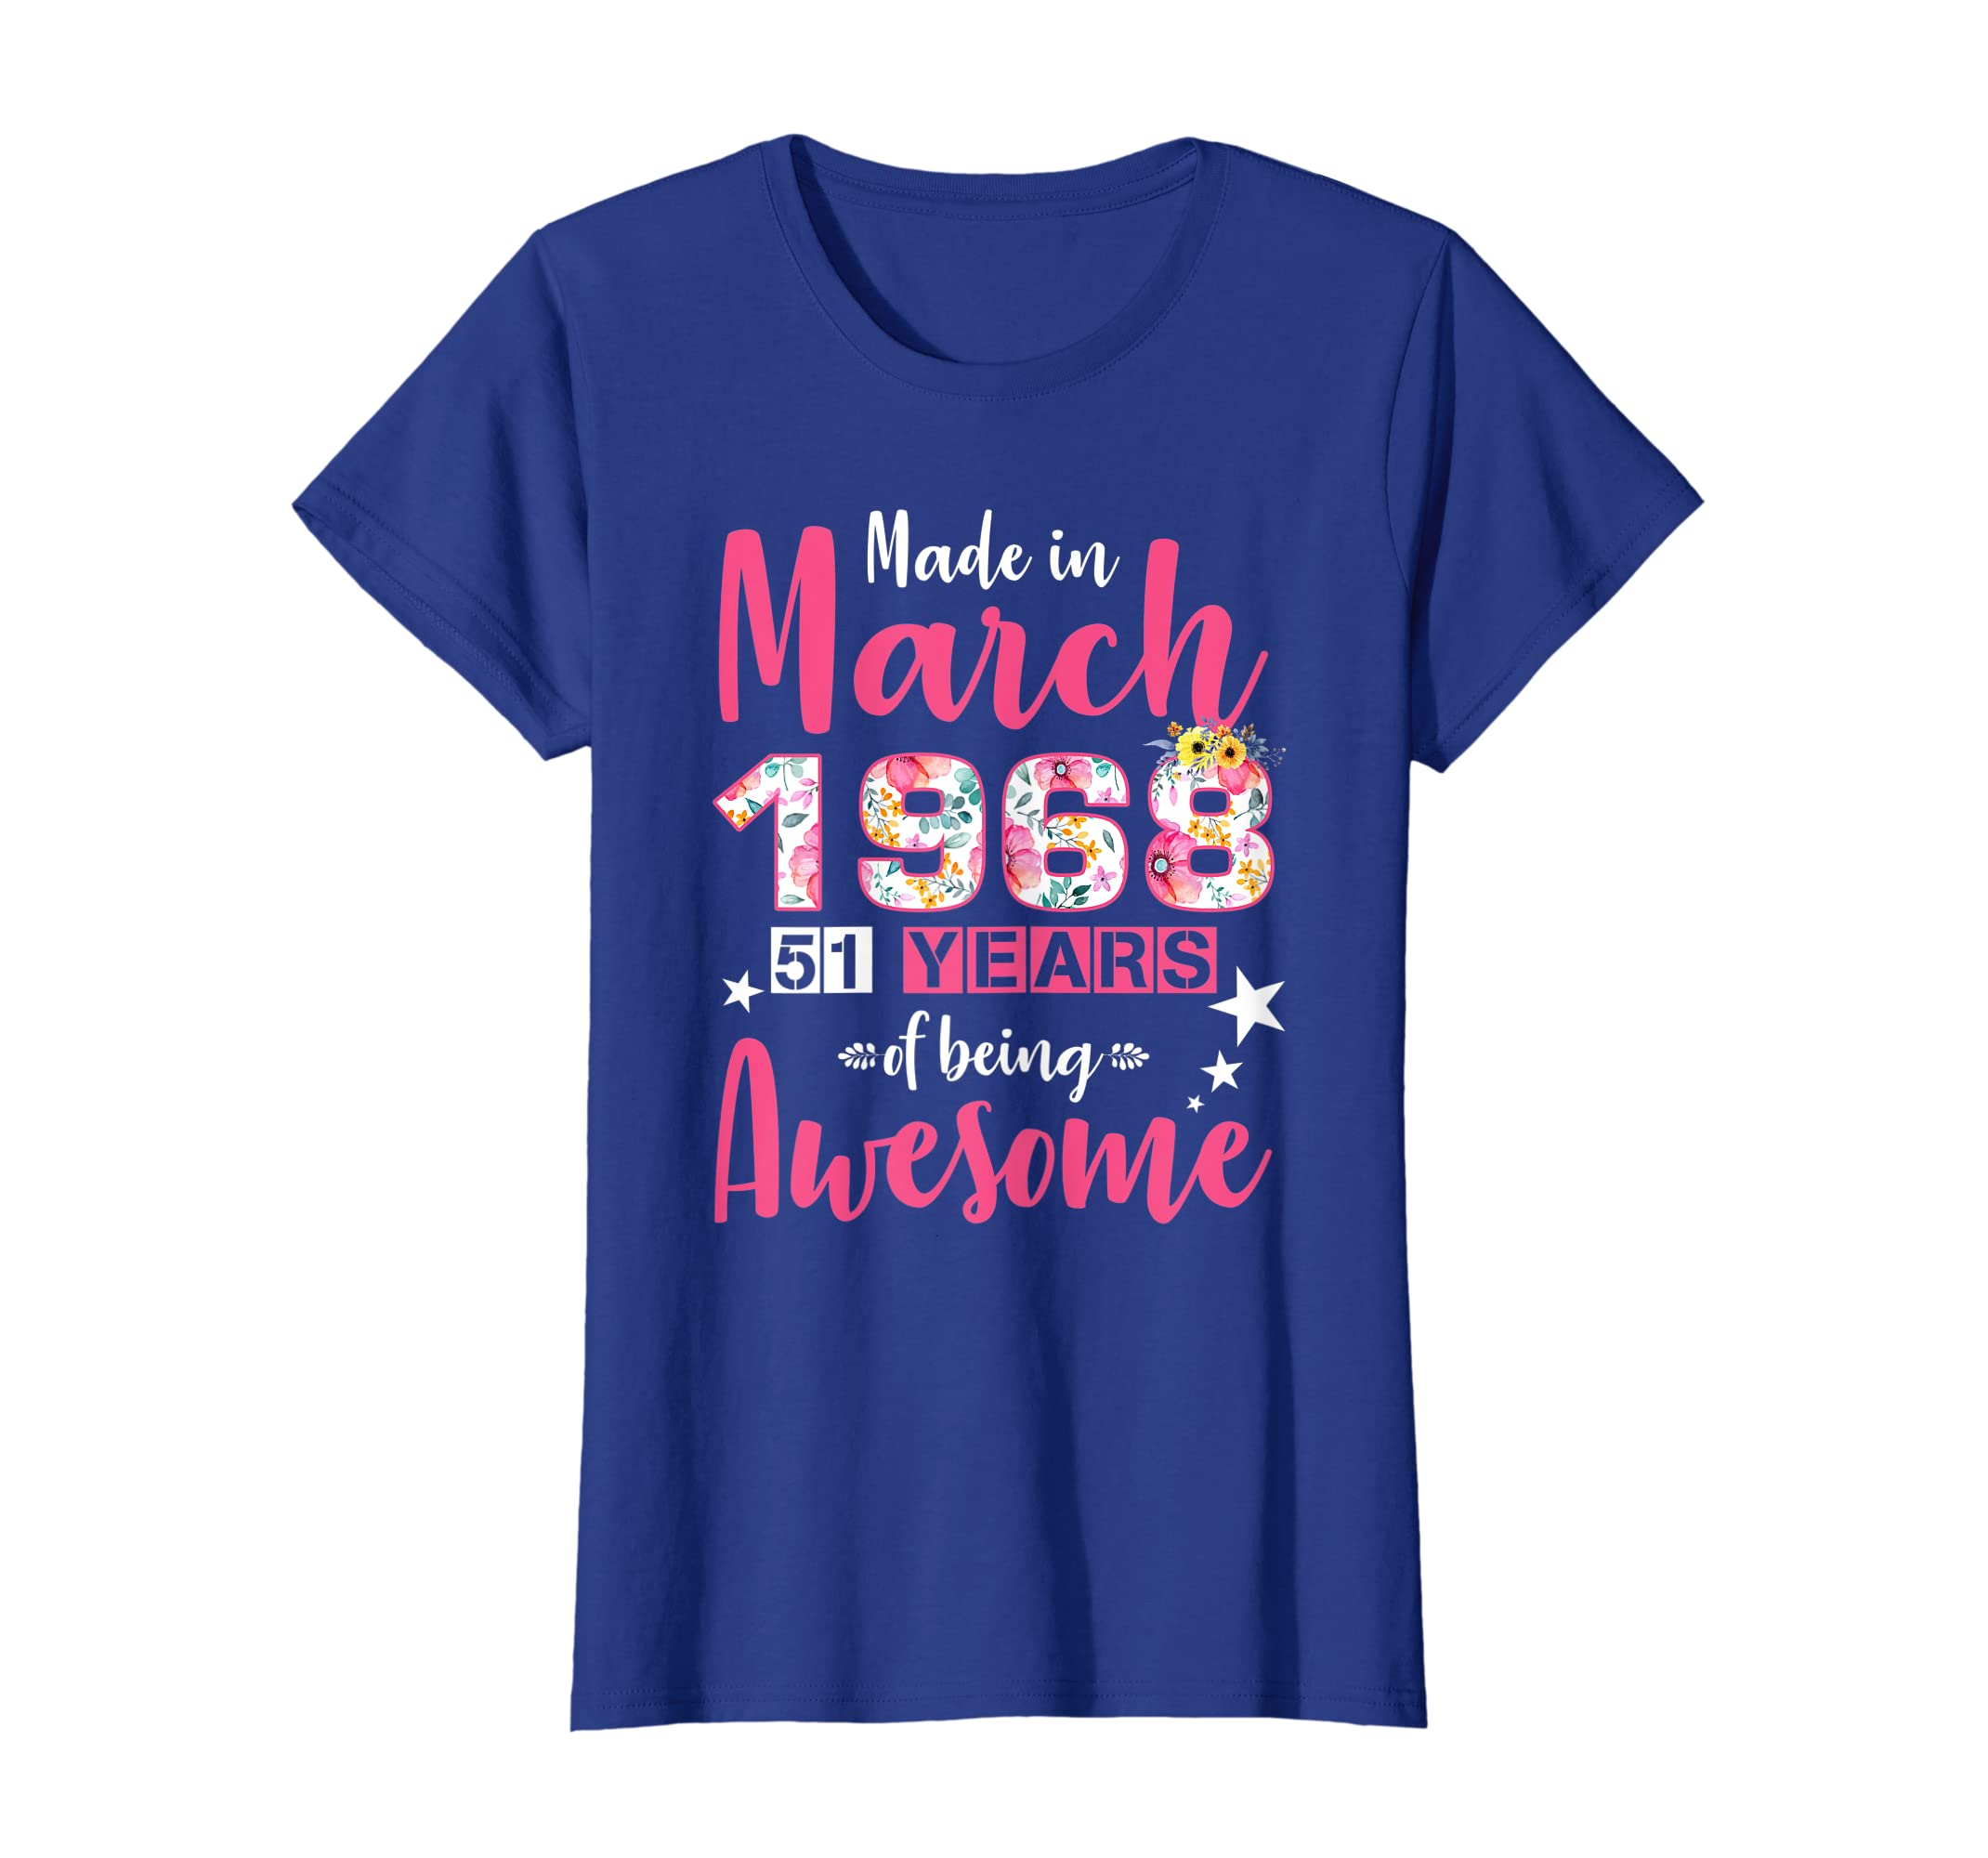 b1d66dcc1 Amazon.com: Made In March 1968 51st Birthday Years Awesome T-Shirt: Clothing